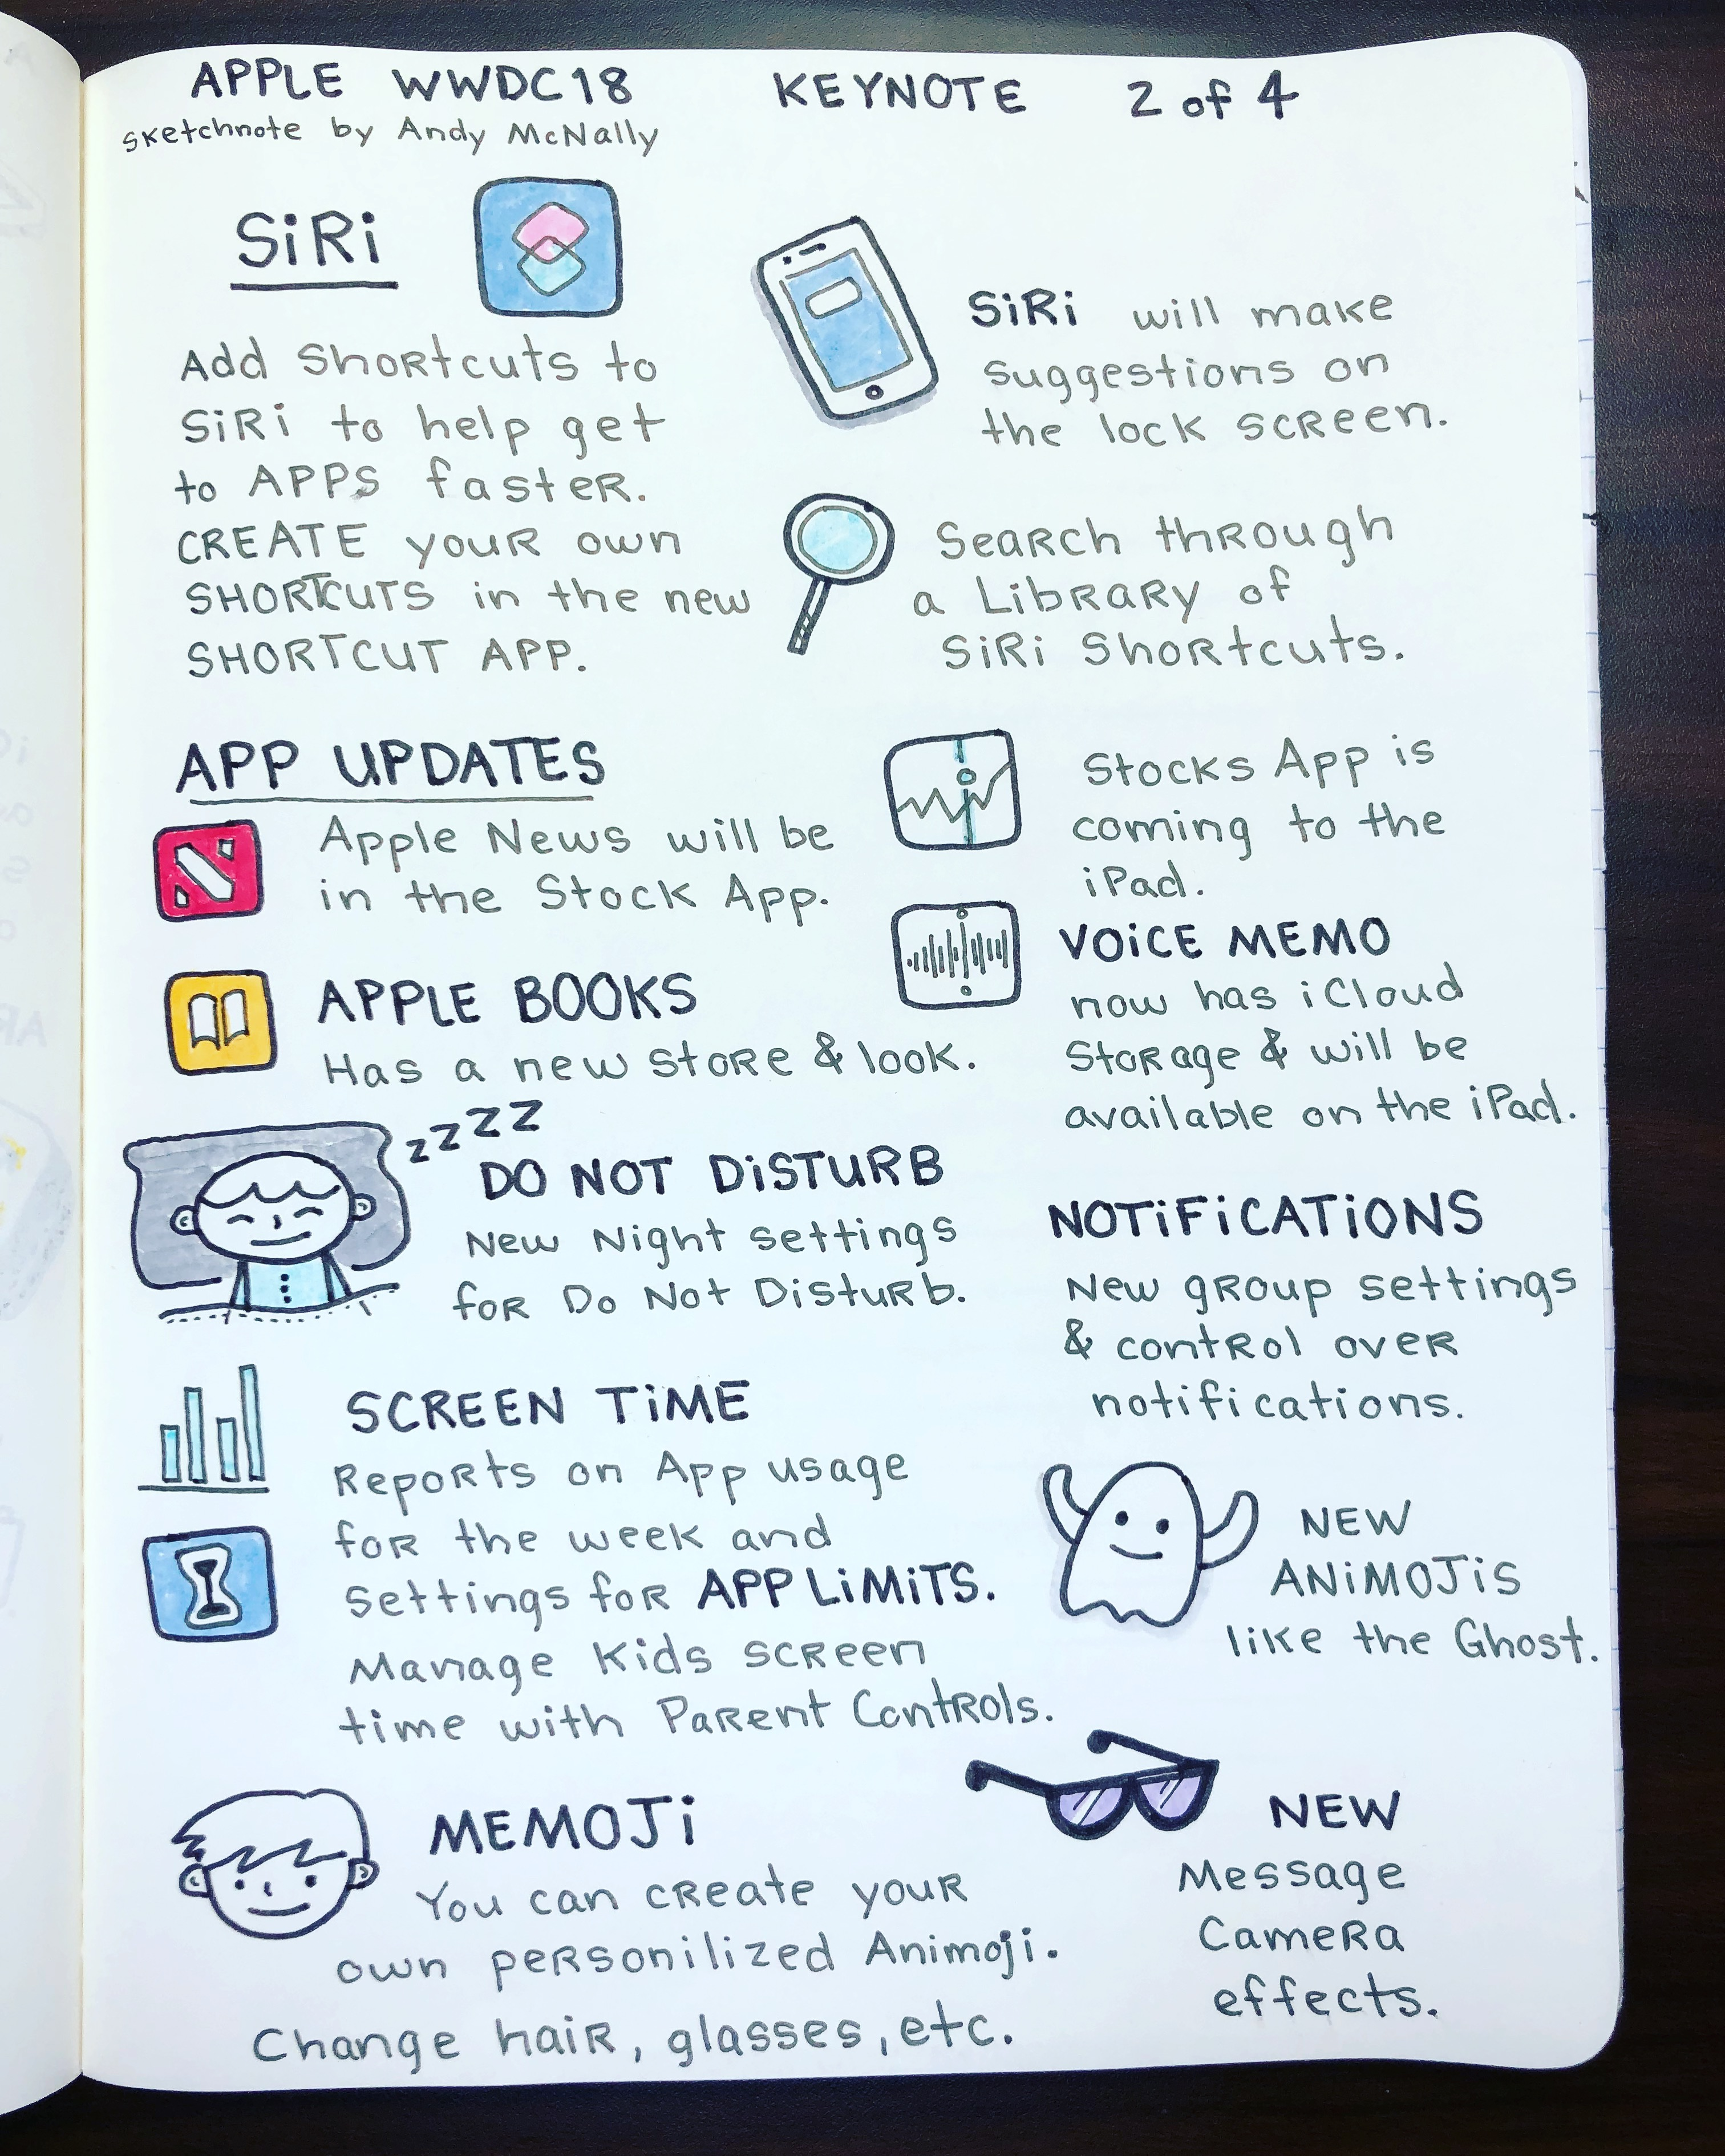 Apple WWDC 2018 keynote in sketchnotes, Part 2 of 4.